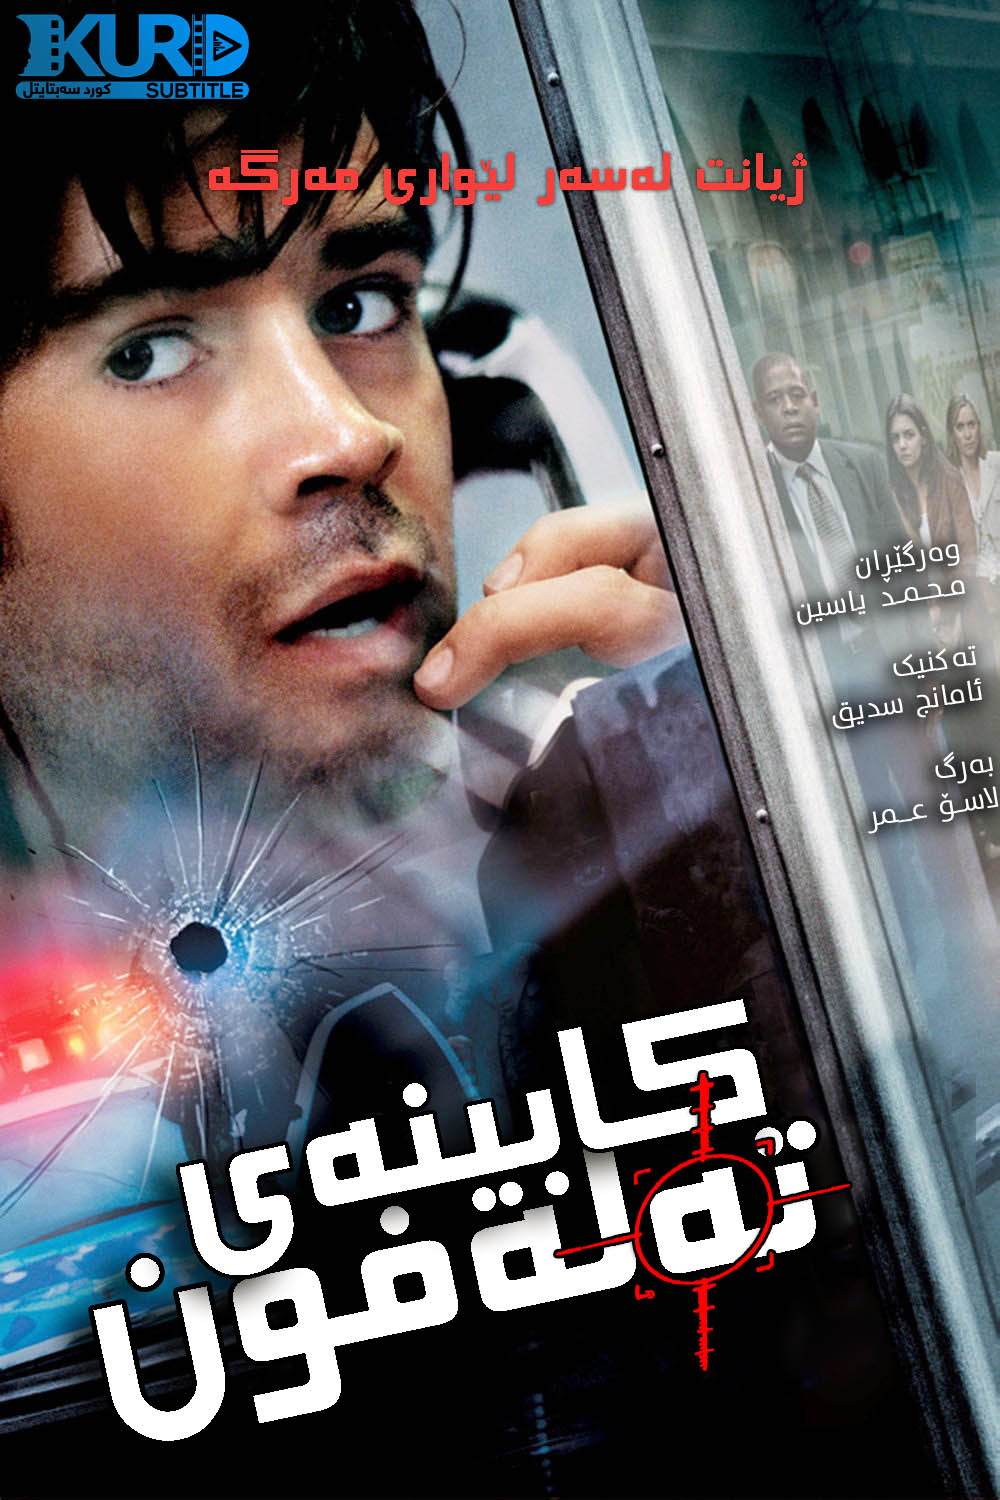 Phone Booth kurdish poster